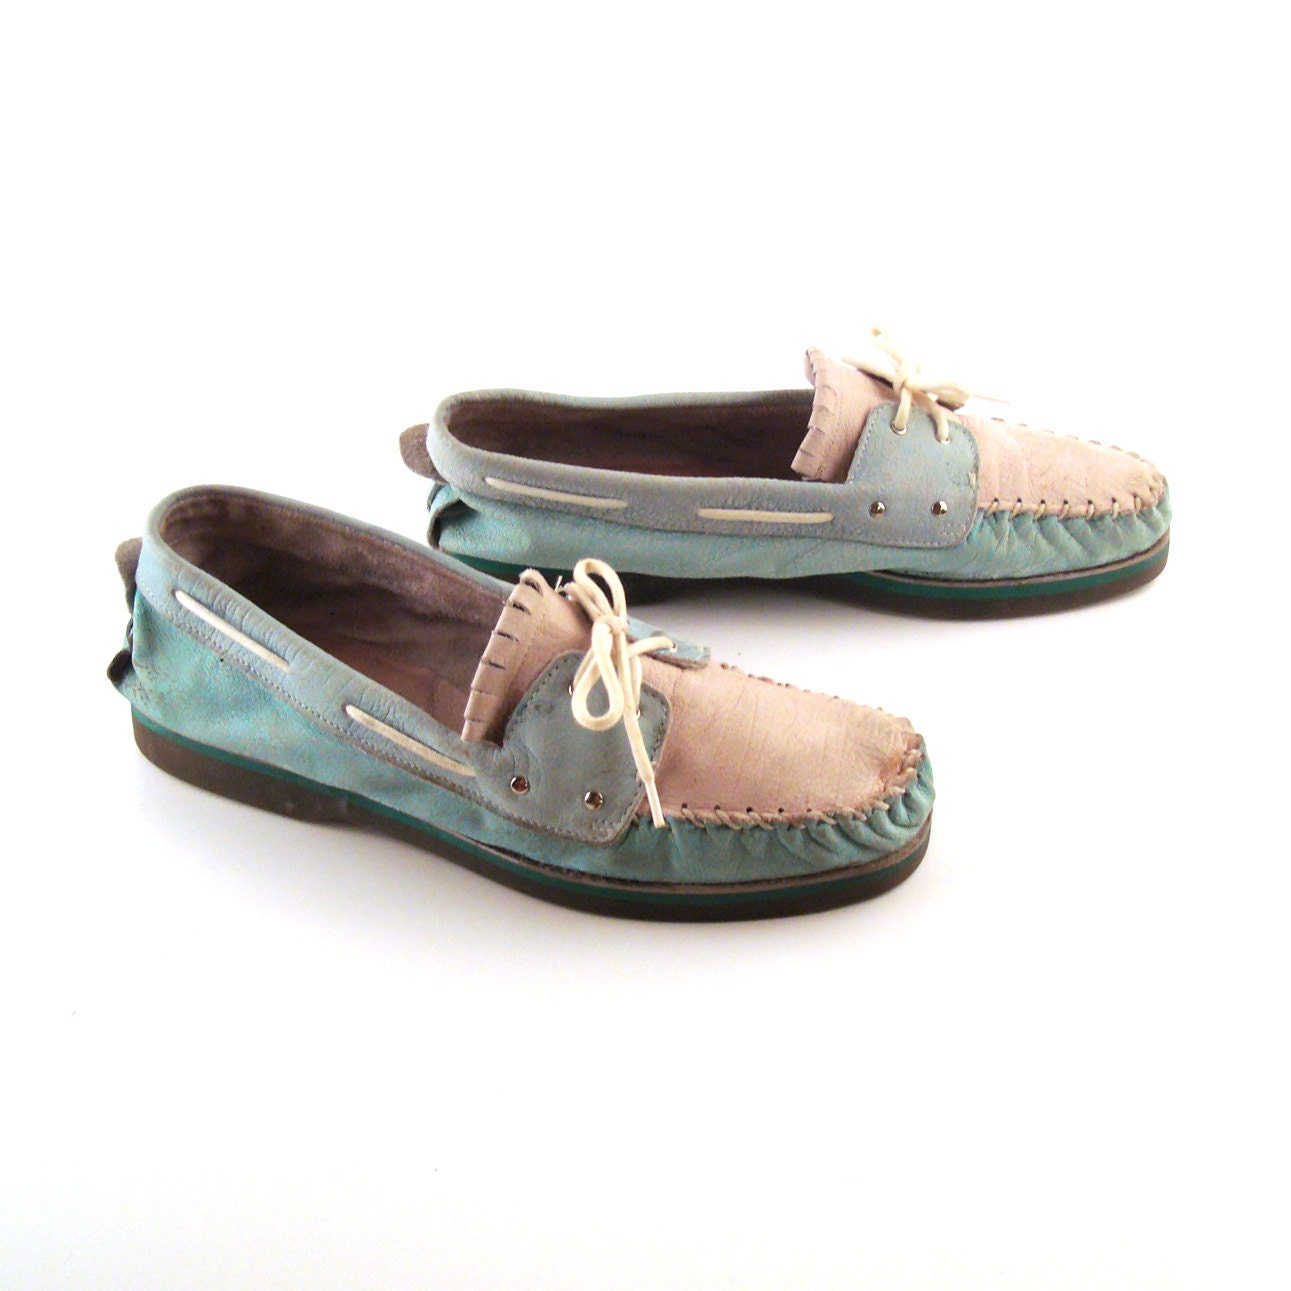 Zodiac Boat Shoes Vintage 1980s Mens Teal and Off White